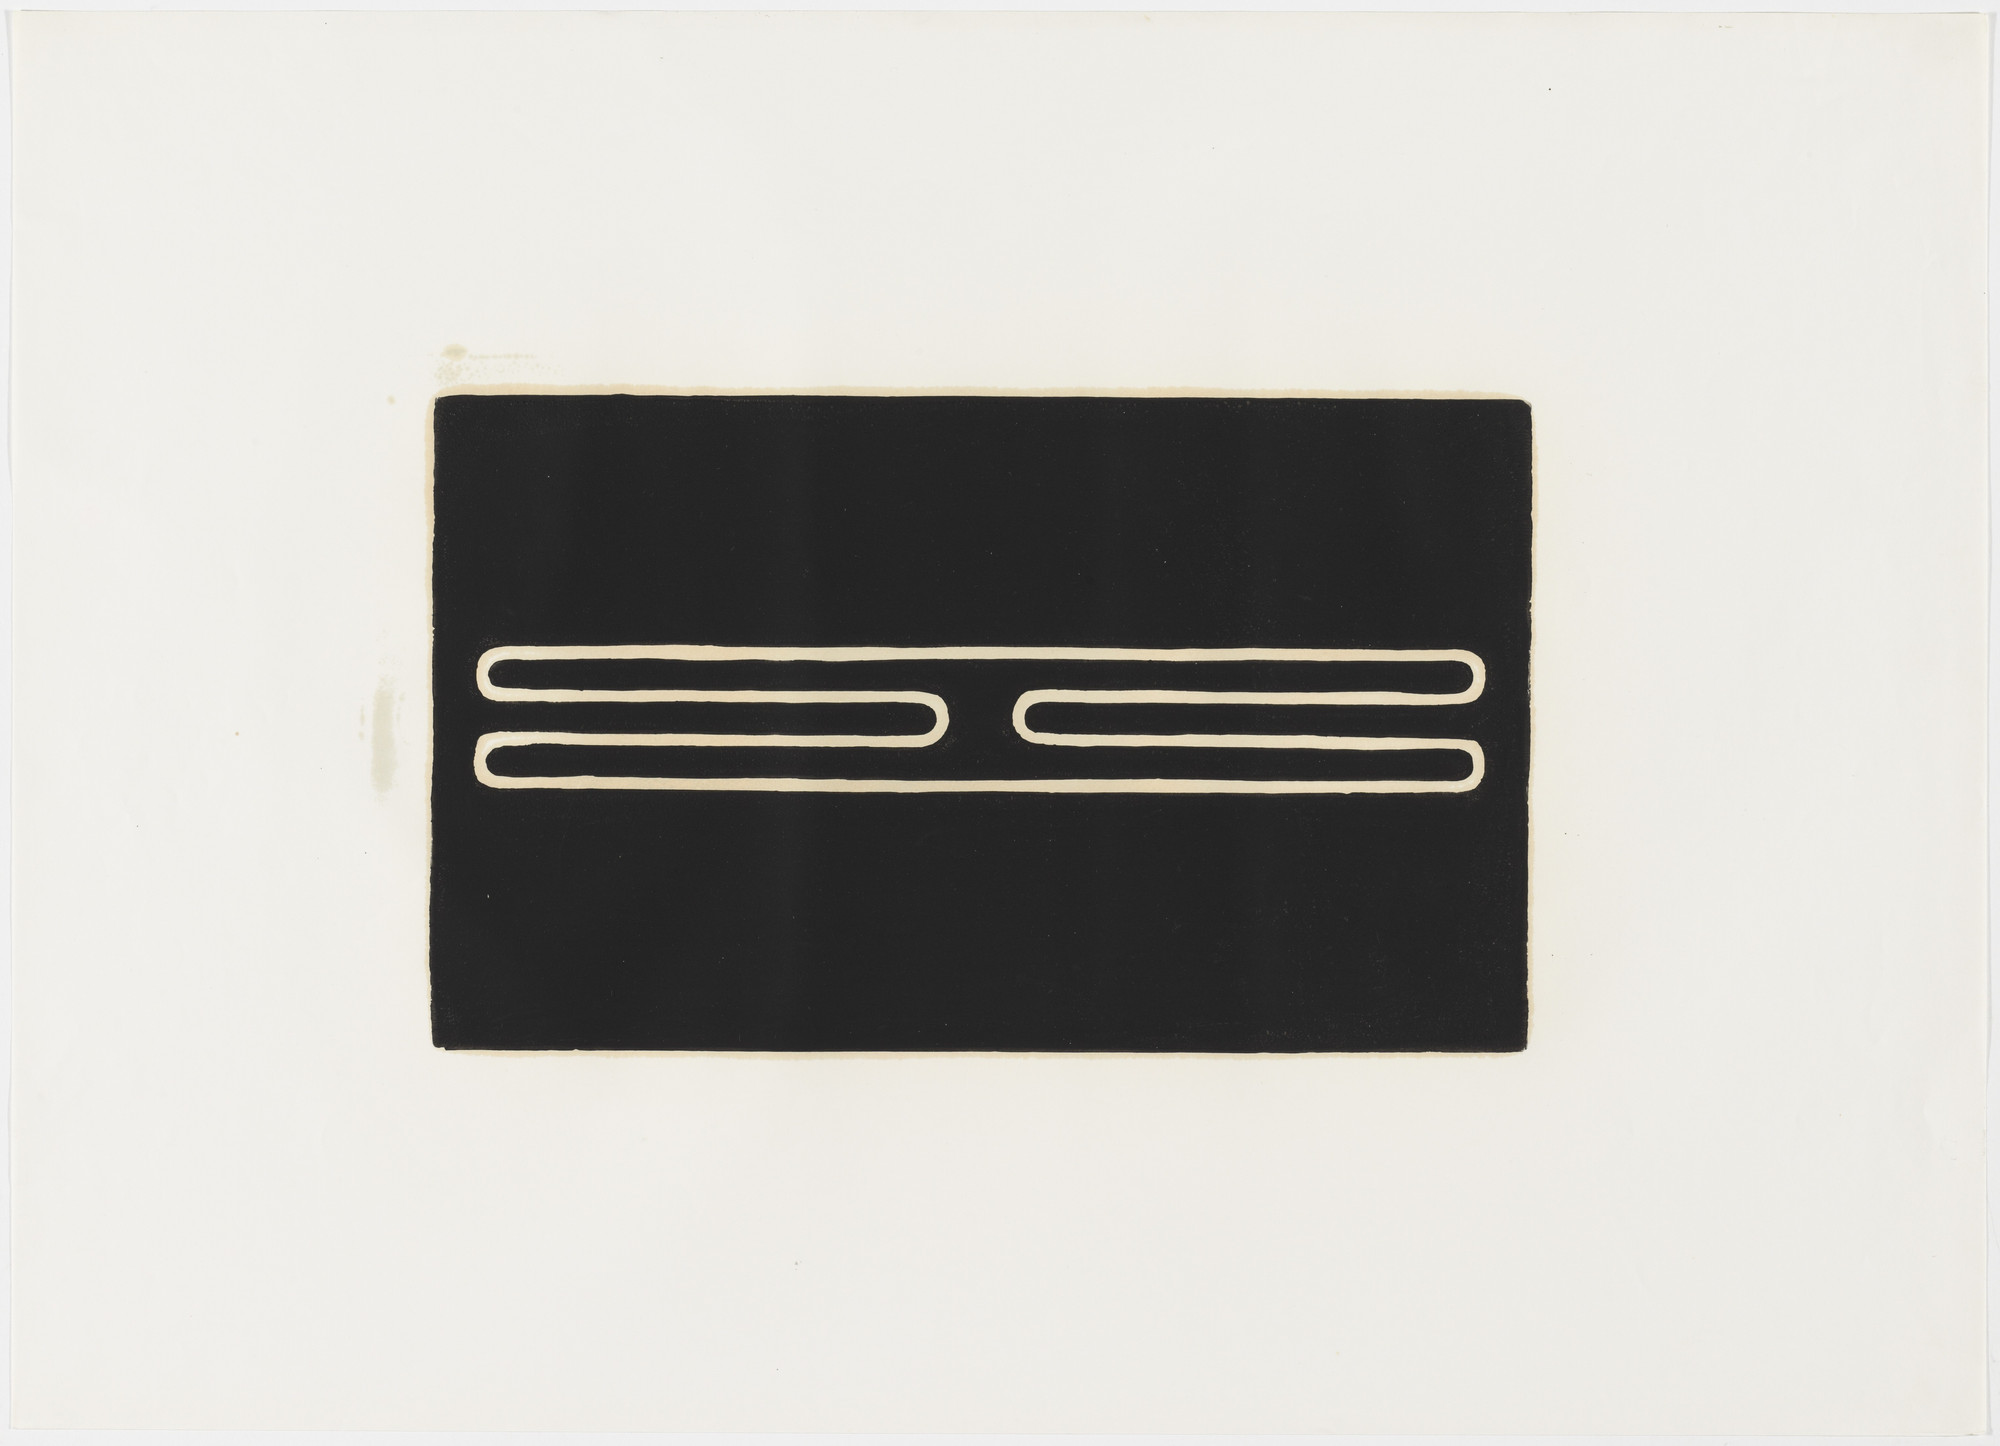 Donald Judd. Untitled. 1961, printed 1979